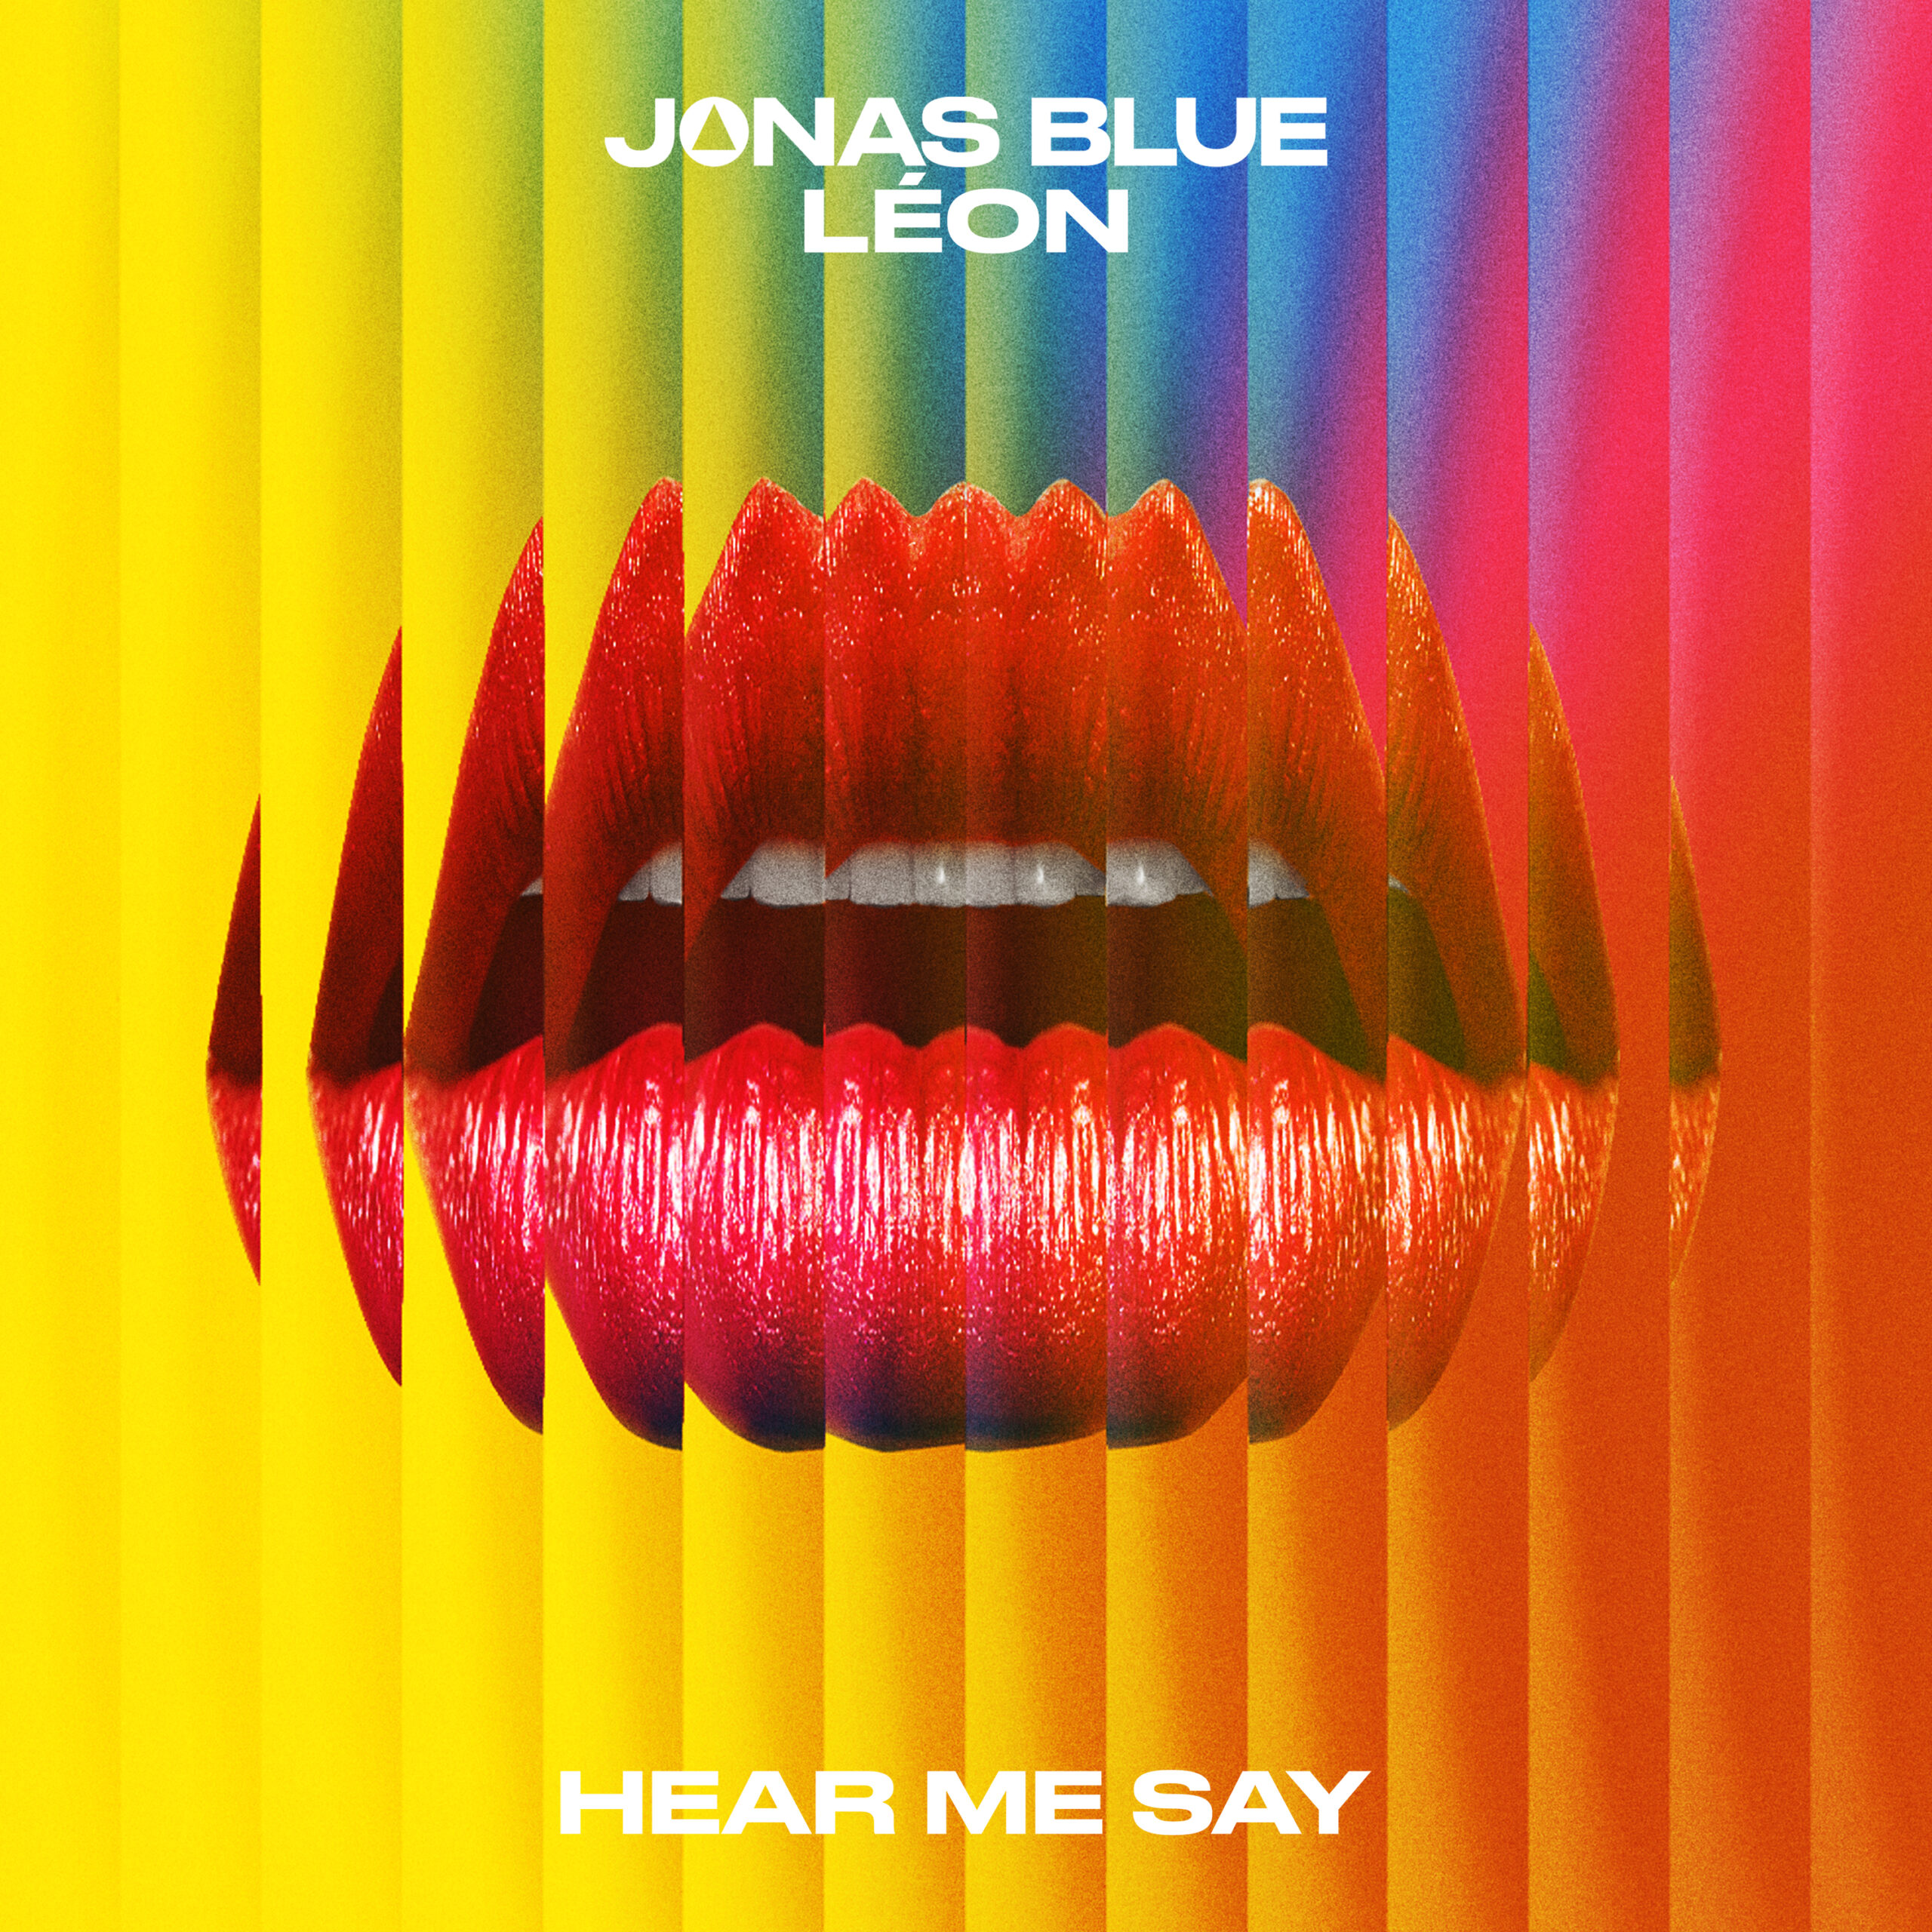 Jonas Blue artwork courtesy of Capitol Music Group for use by 360 Magazine